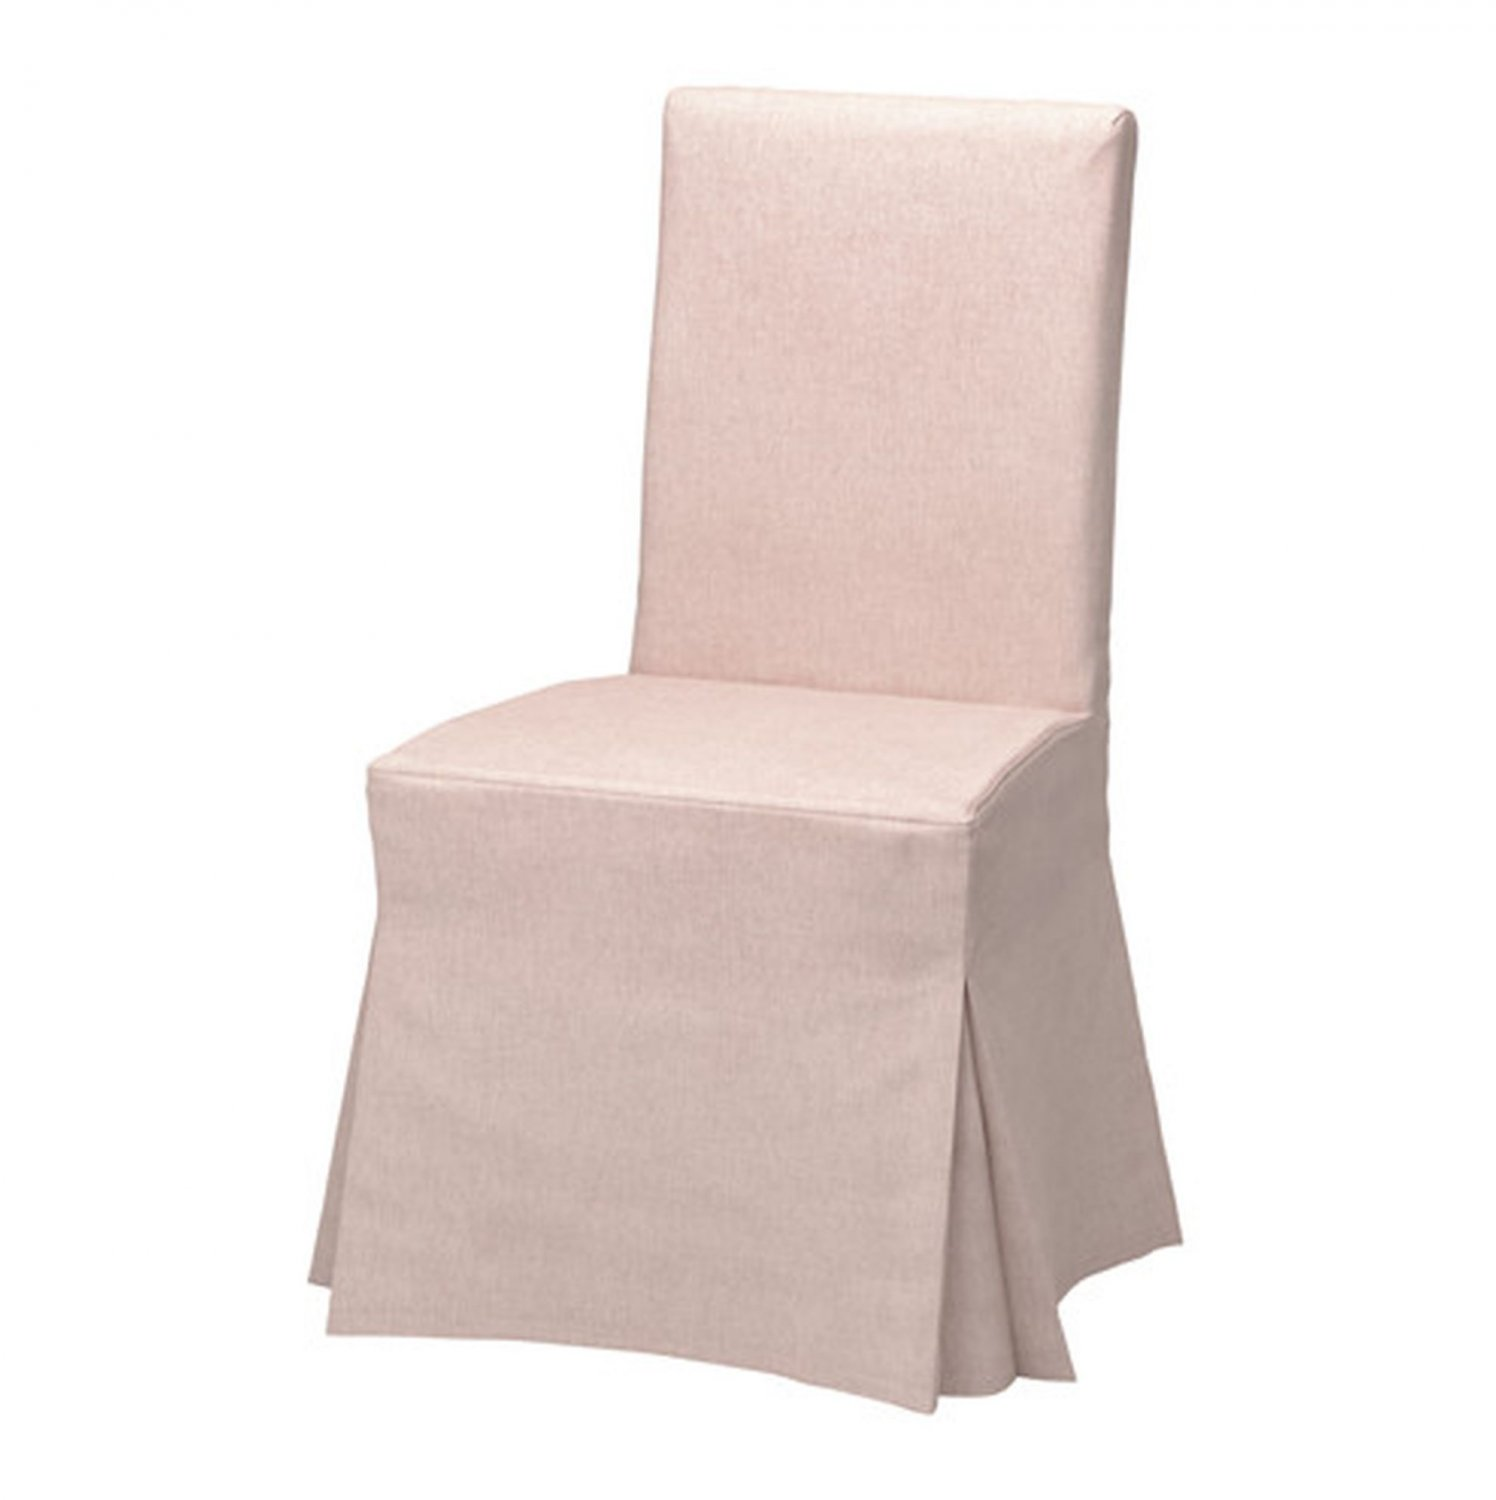 cotton dining chair covers uk stacking chairs ikea henriksdal slipcover cover skirted long